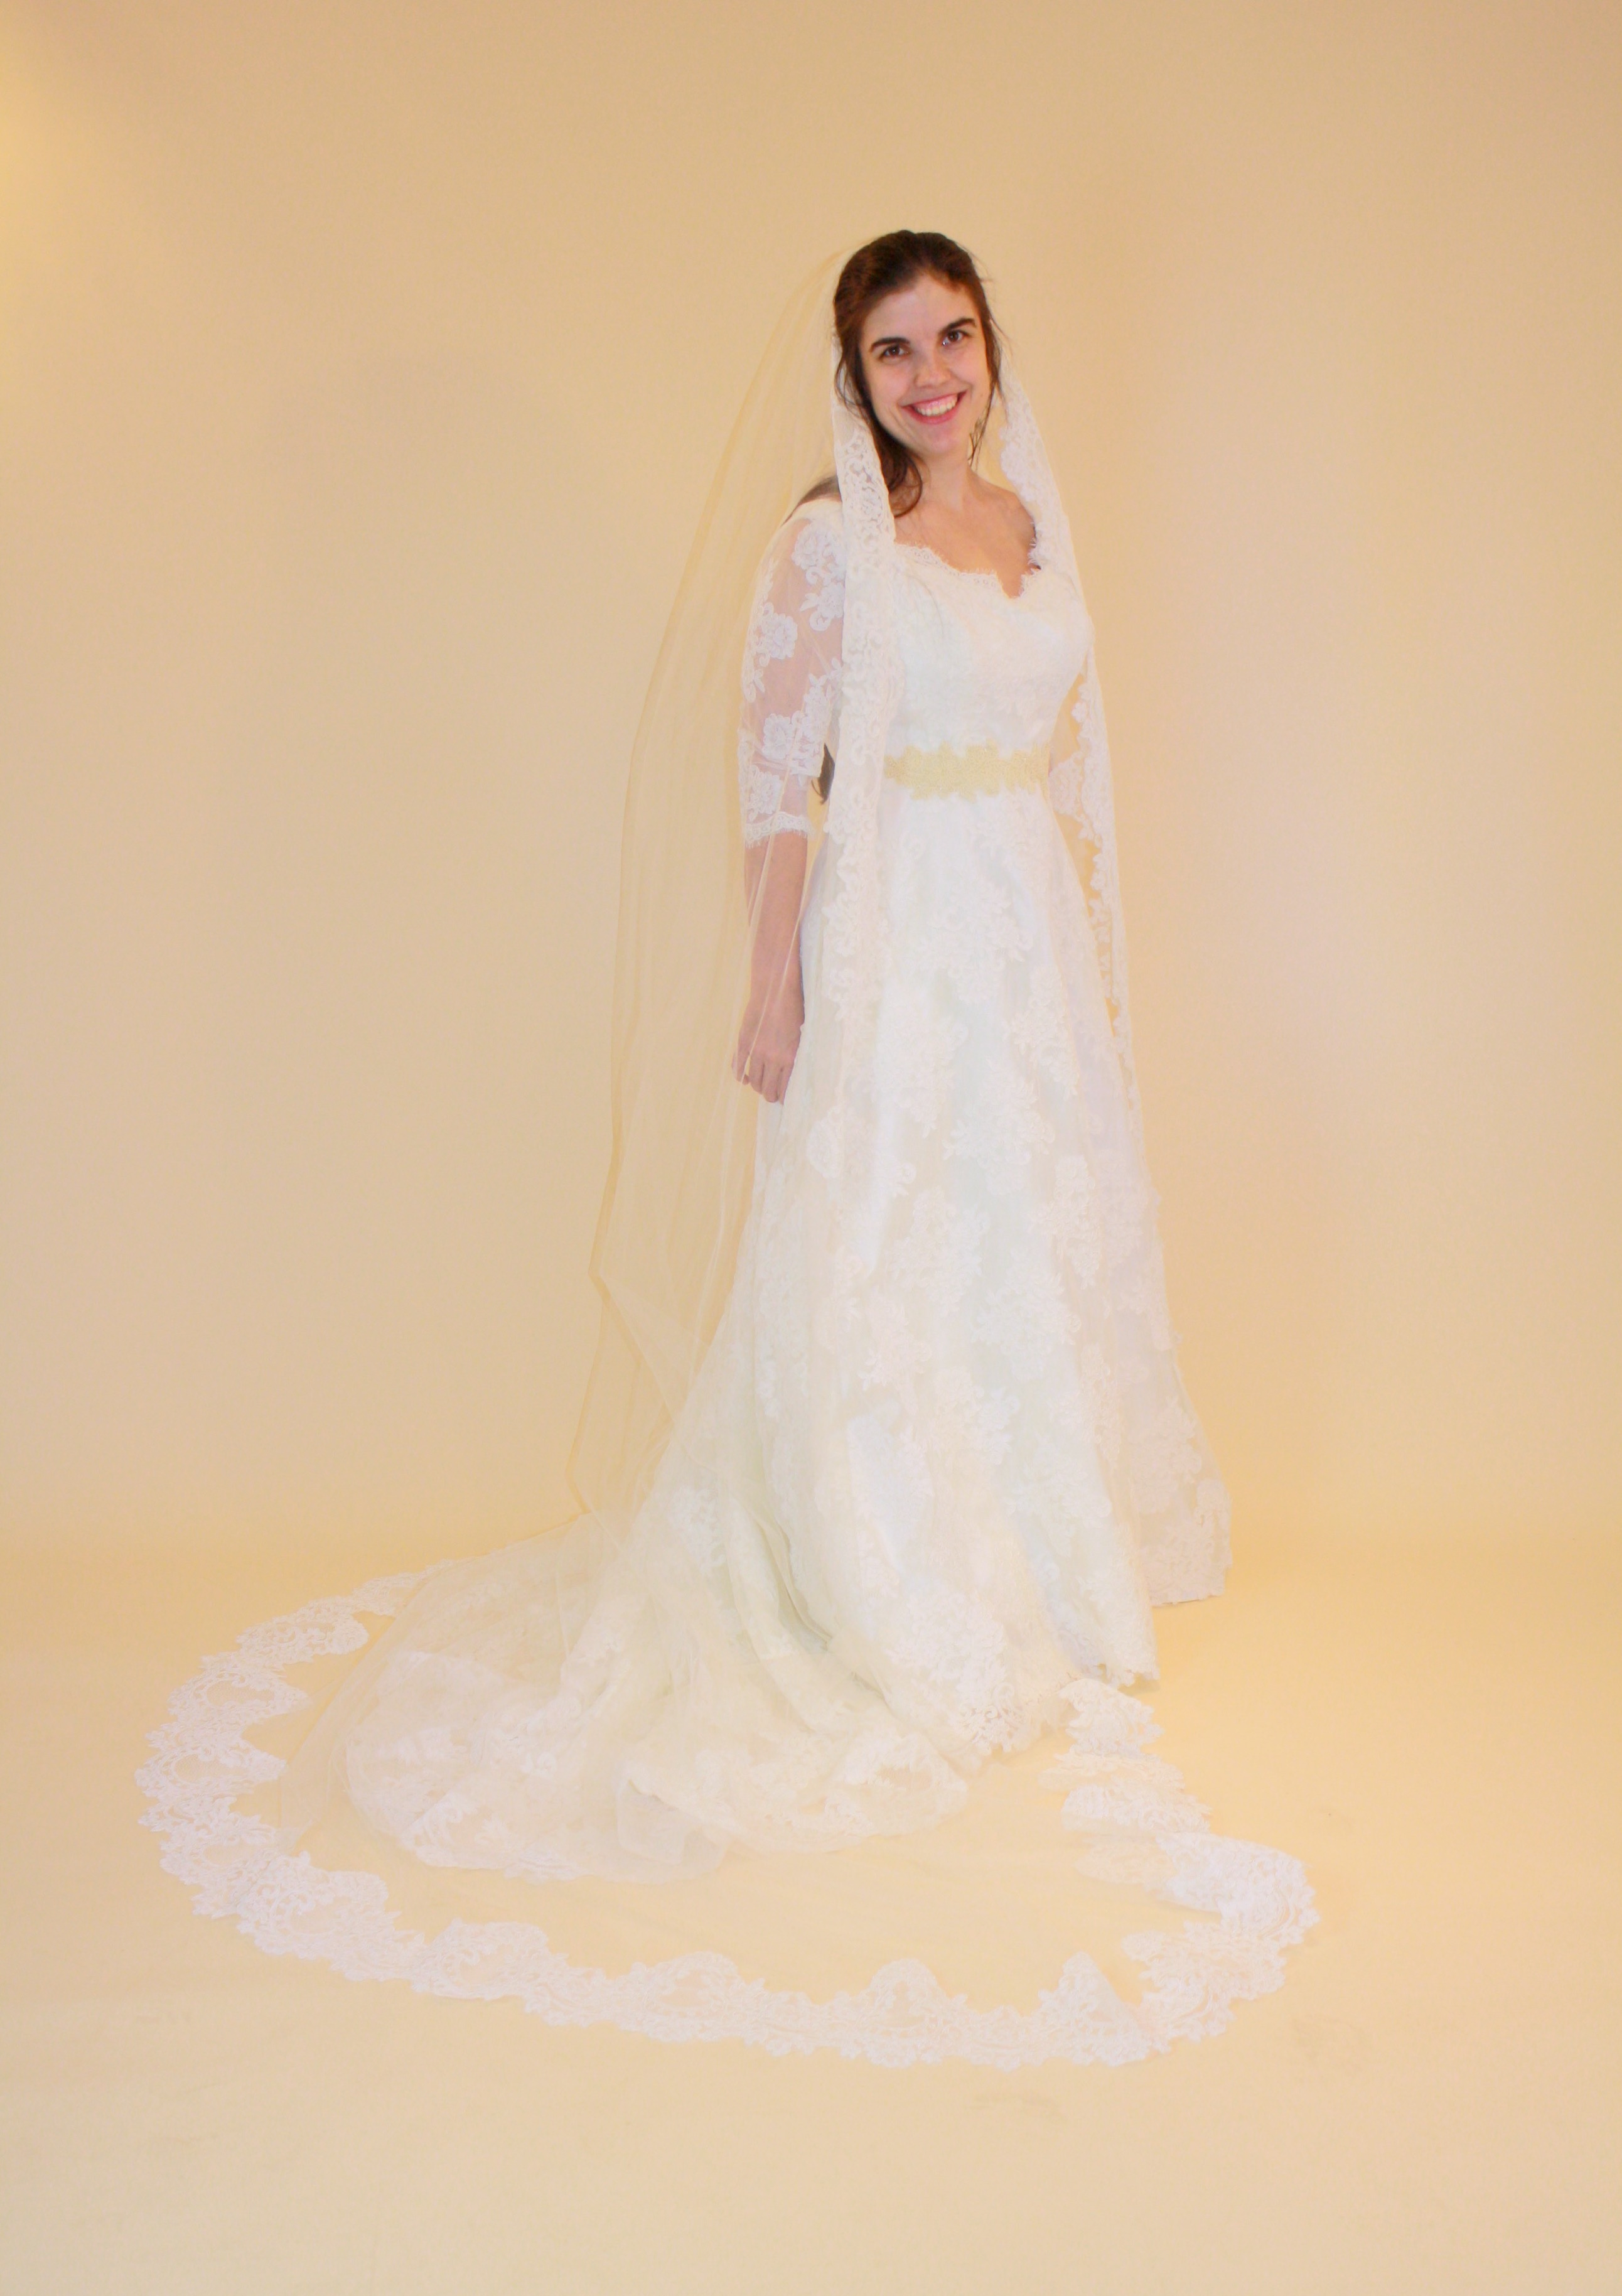 Christina gown with lace veil